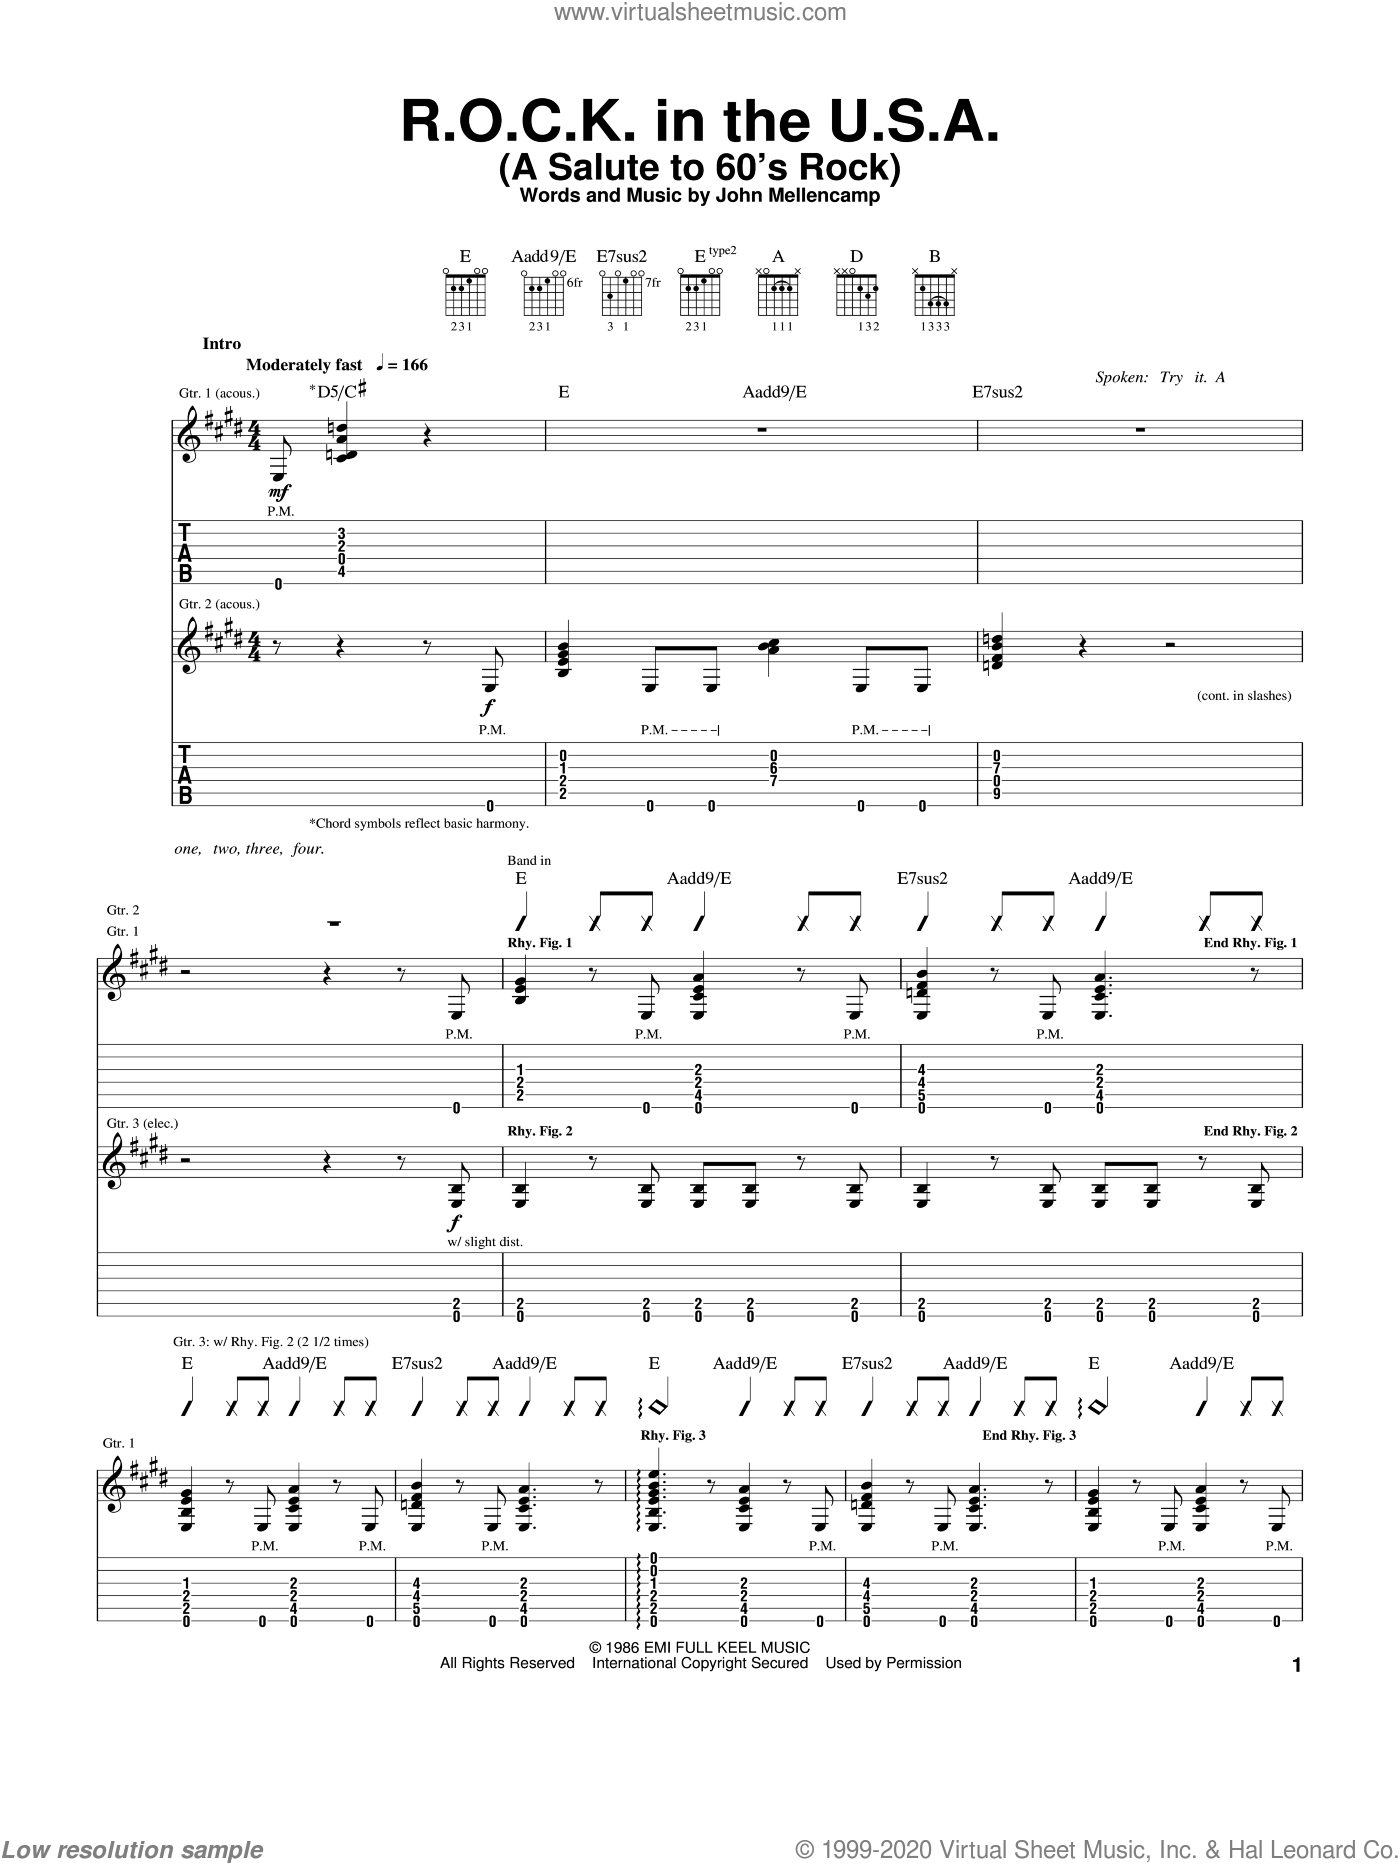 R.O.C.K. In The U.S.A. (A Salute To 60's Rock) sheet music for guitar (tablature) by John Mellencamp, intermediate